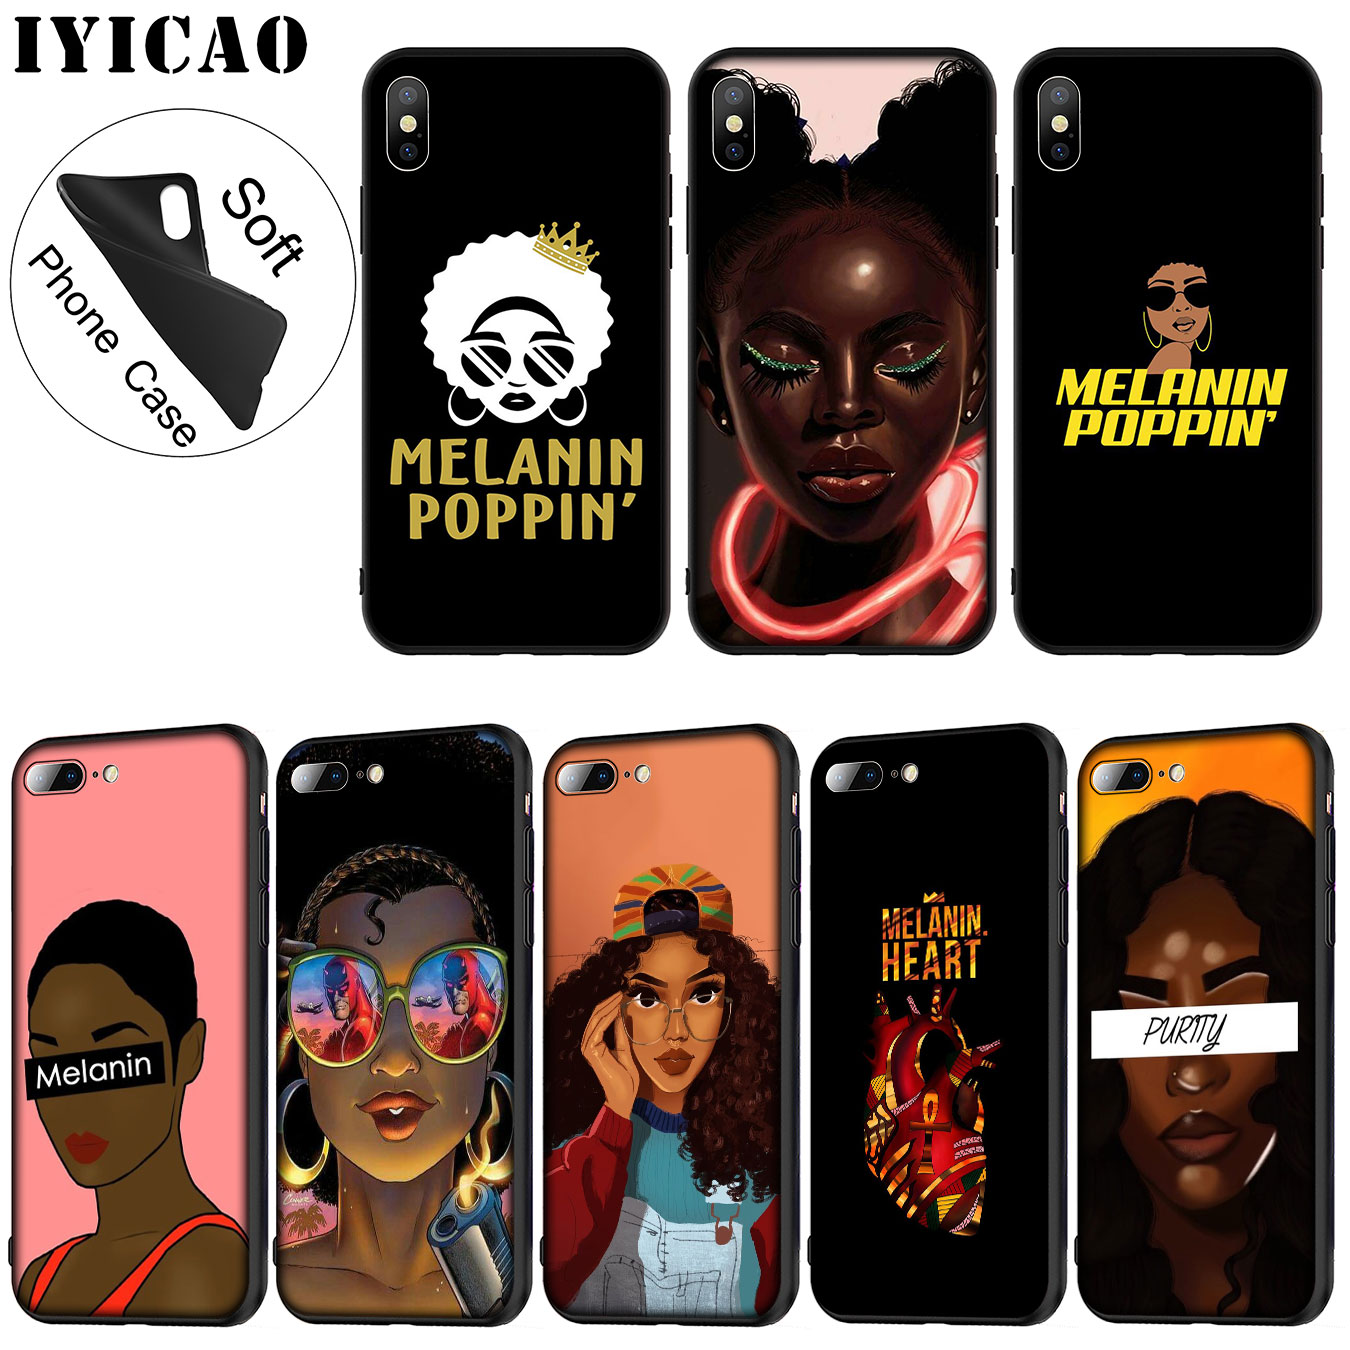 Phone Bags & Cases Disciplined Iyicao 2bunz Melanin Poppin Soft Silicone Phone Case For Iphone Xr X Xs Max 6 6s 7 8 Plus 5 5s Se Tpu Black Cover Fitted Cases